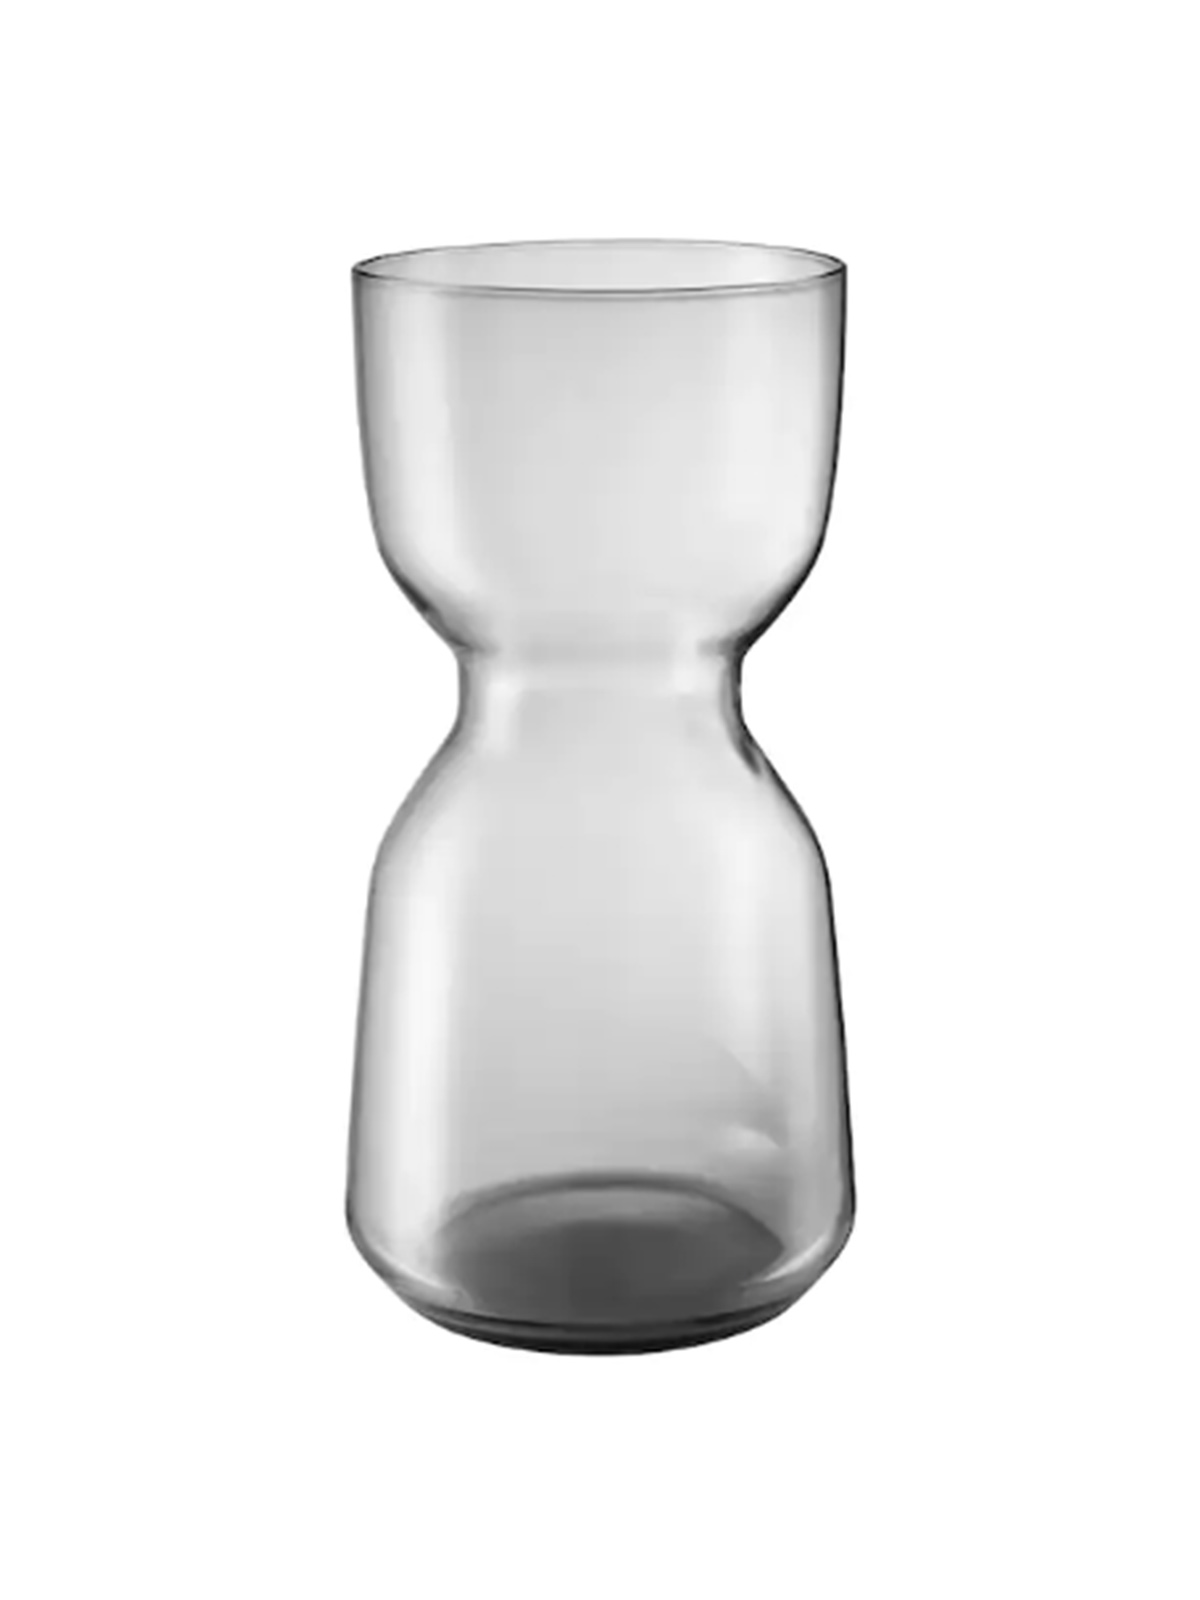 Best IKEA Products, glass vase